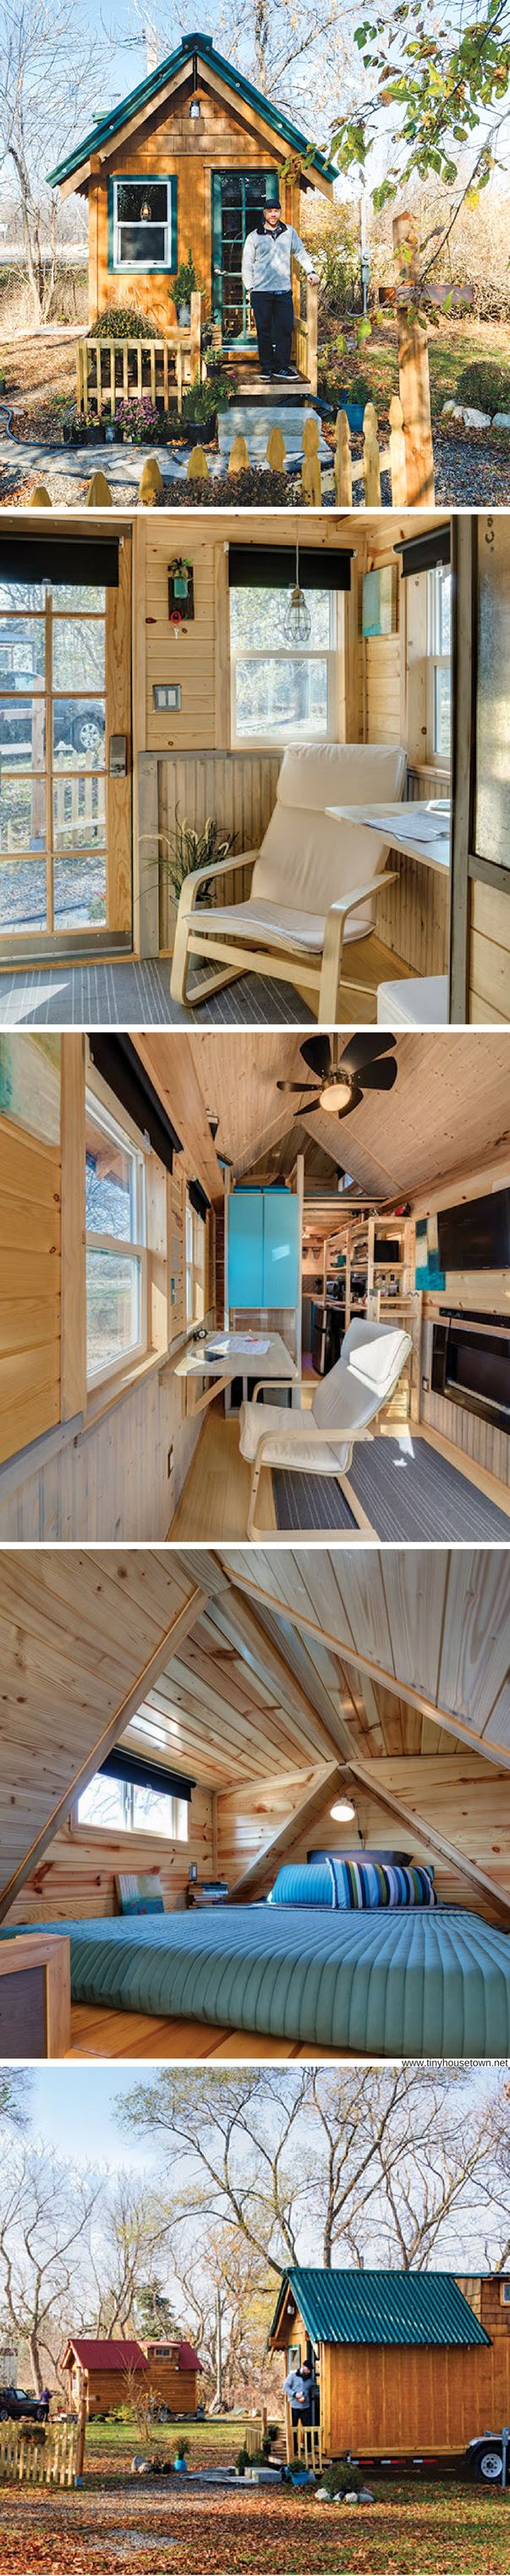 A lakeside tiny house that spans 130 sq ft                                                                                                                                                                                 More